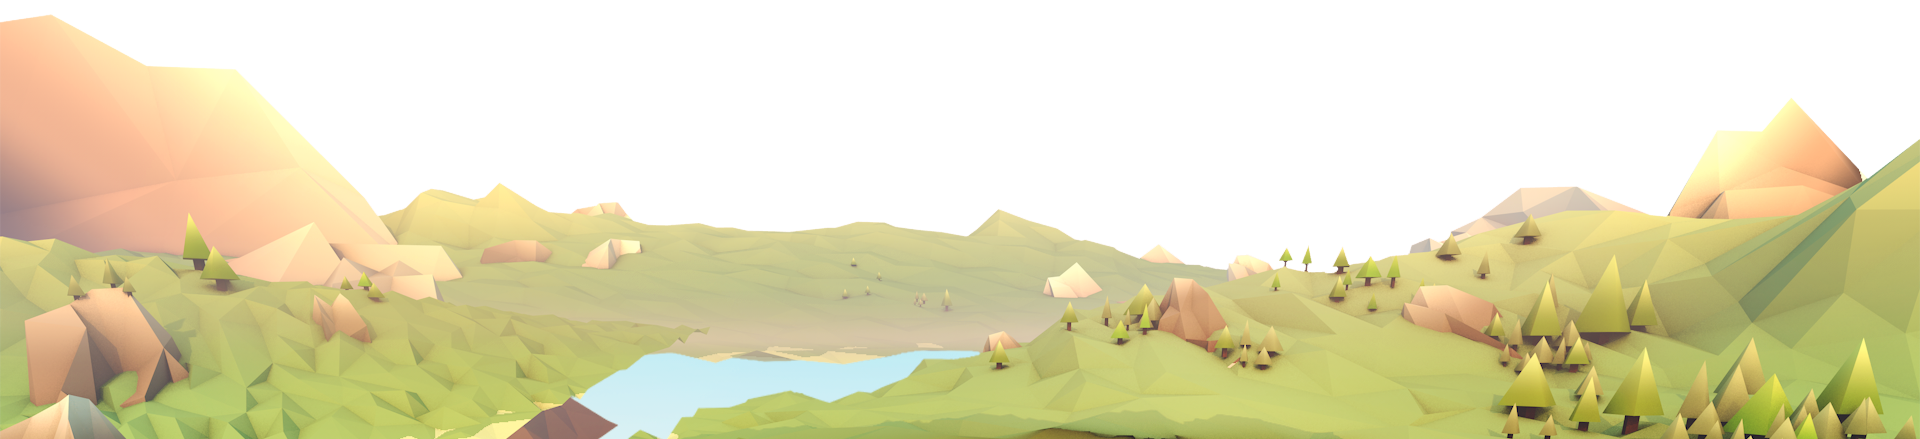 MineThemes Mountains